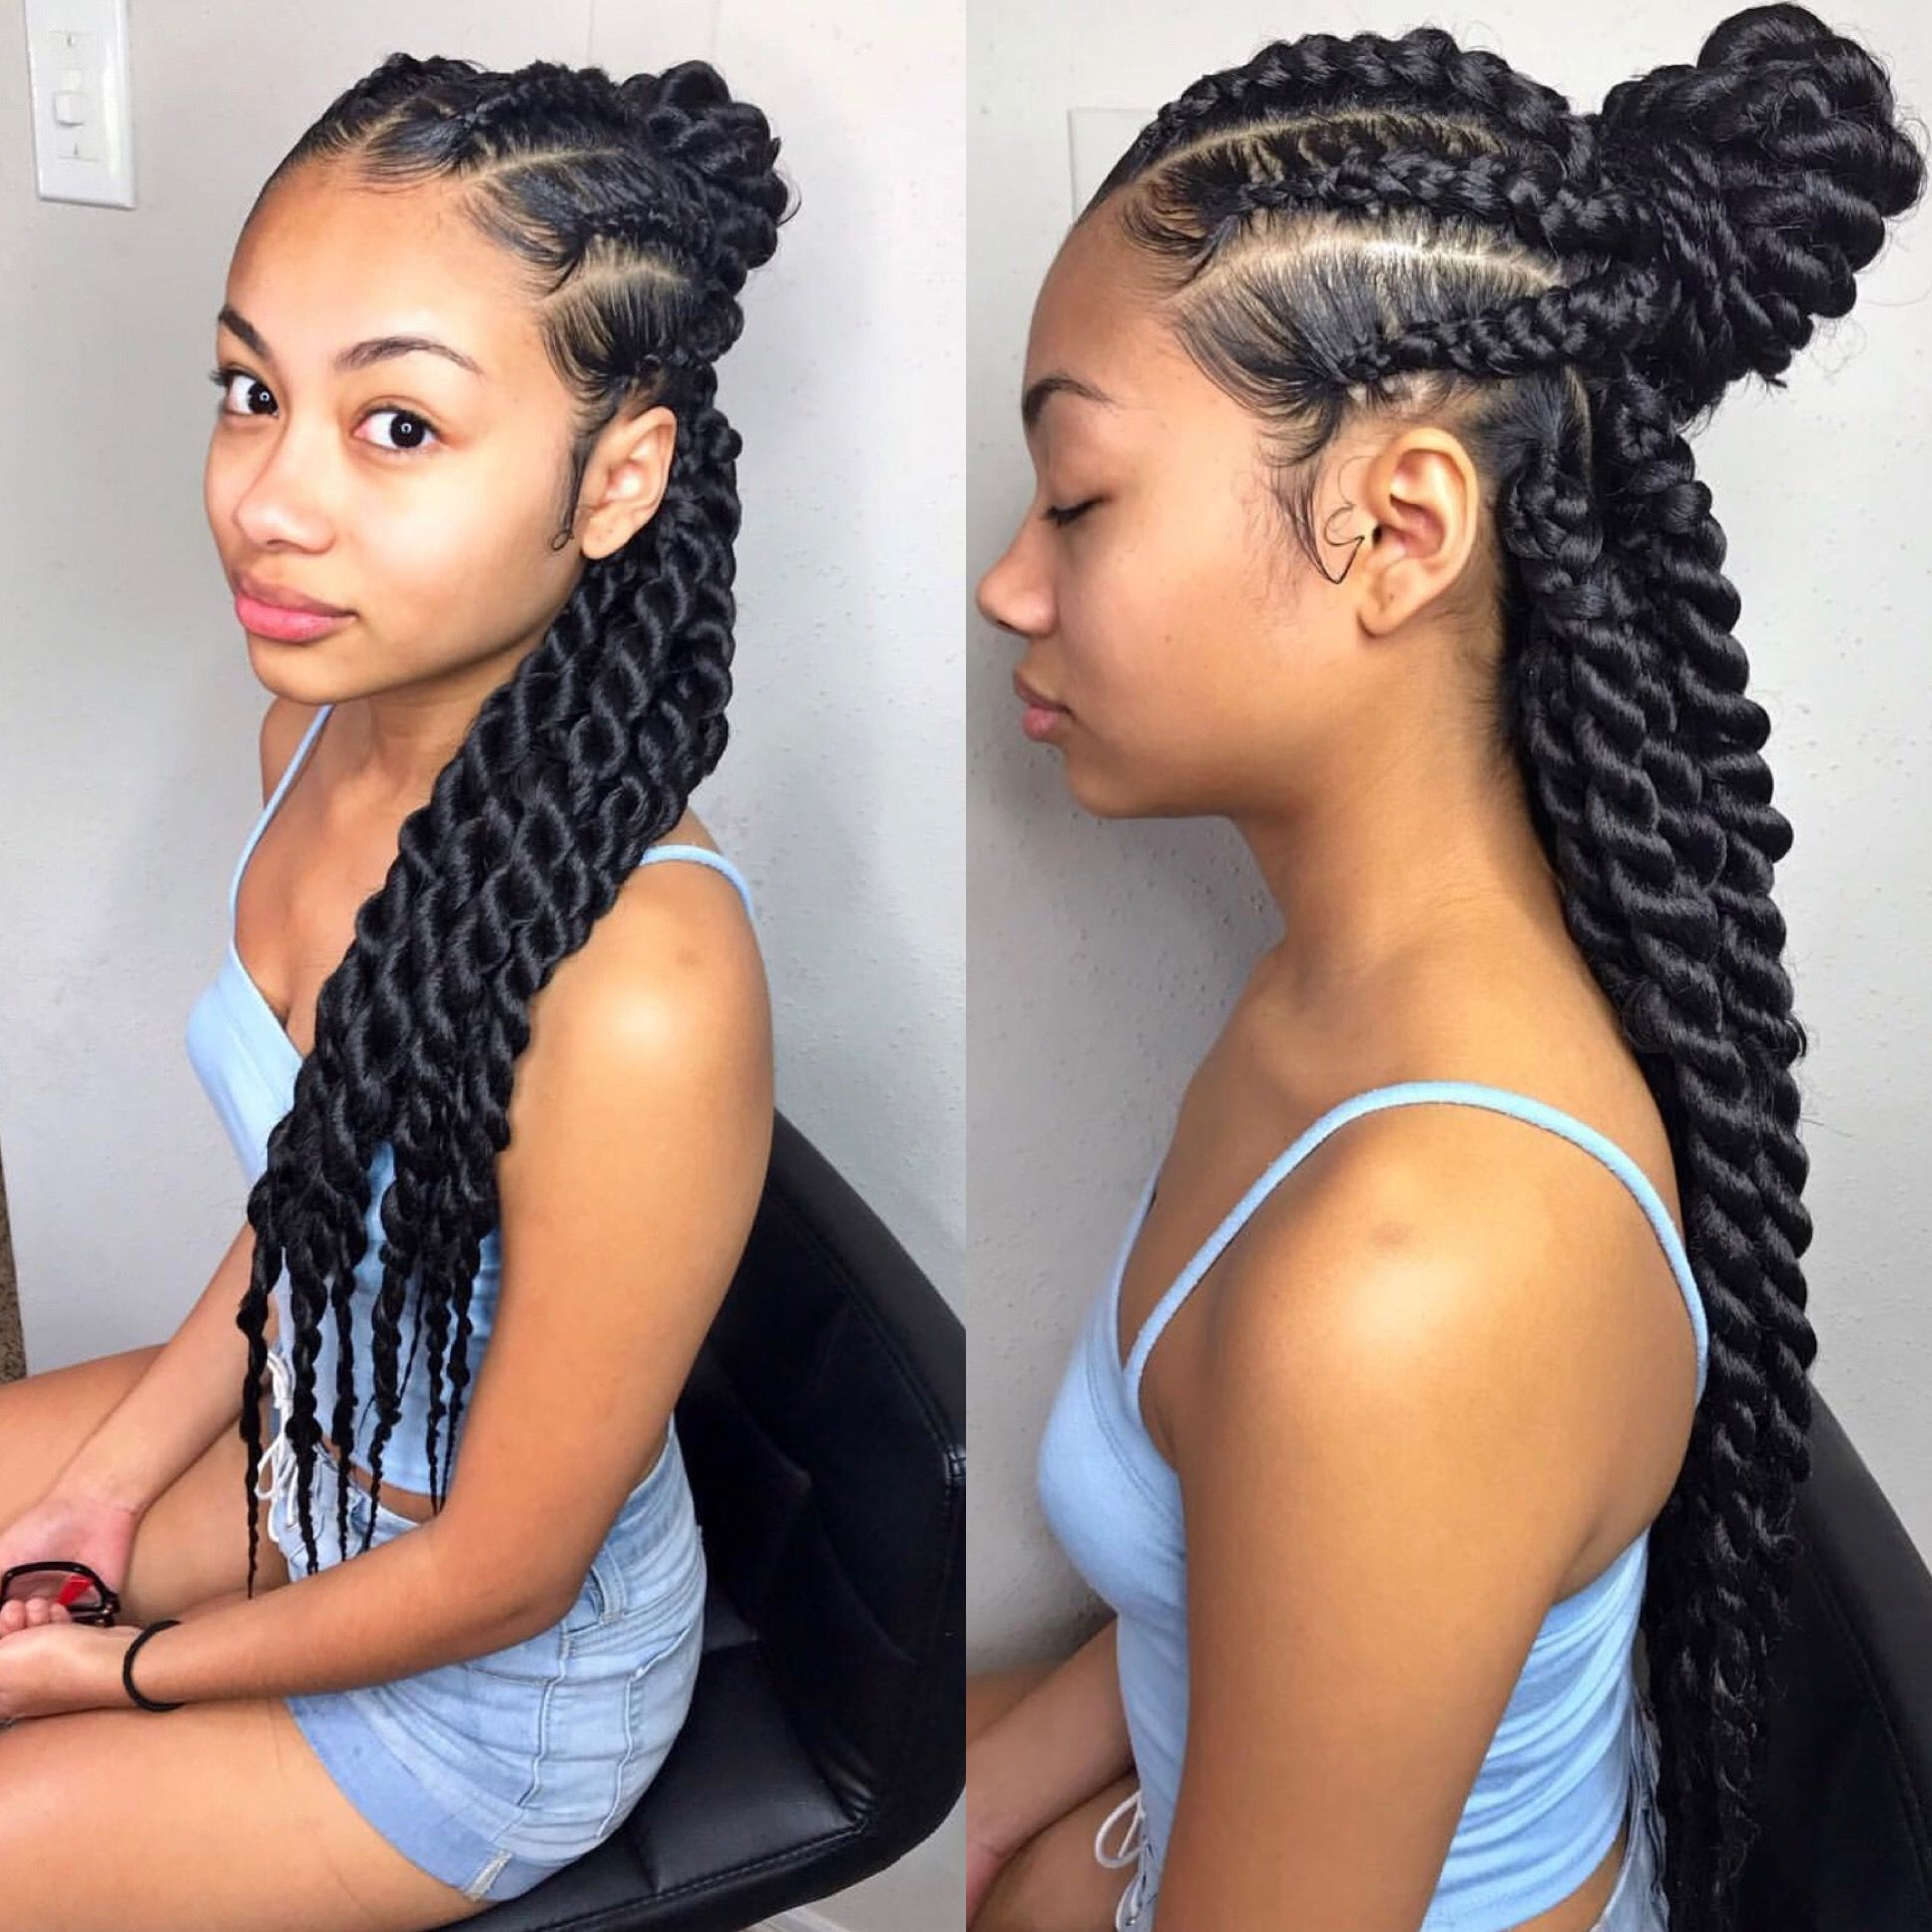 Half Up Half Down Twists By Trapprinzess On Ig Cool Braid Hairstyles Half Braided Hairstyles Natural Hair Styles